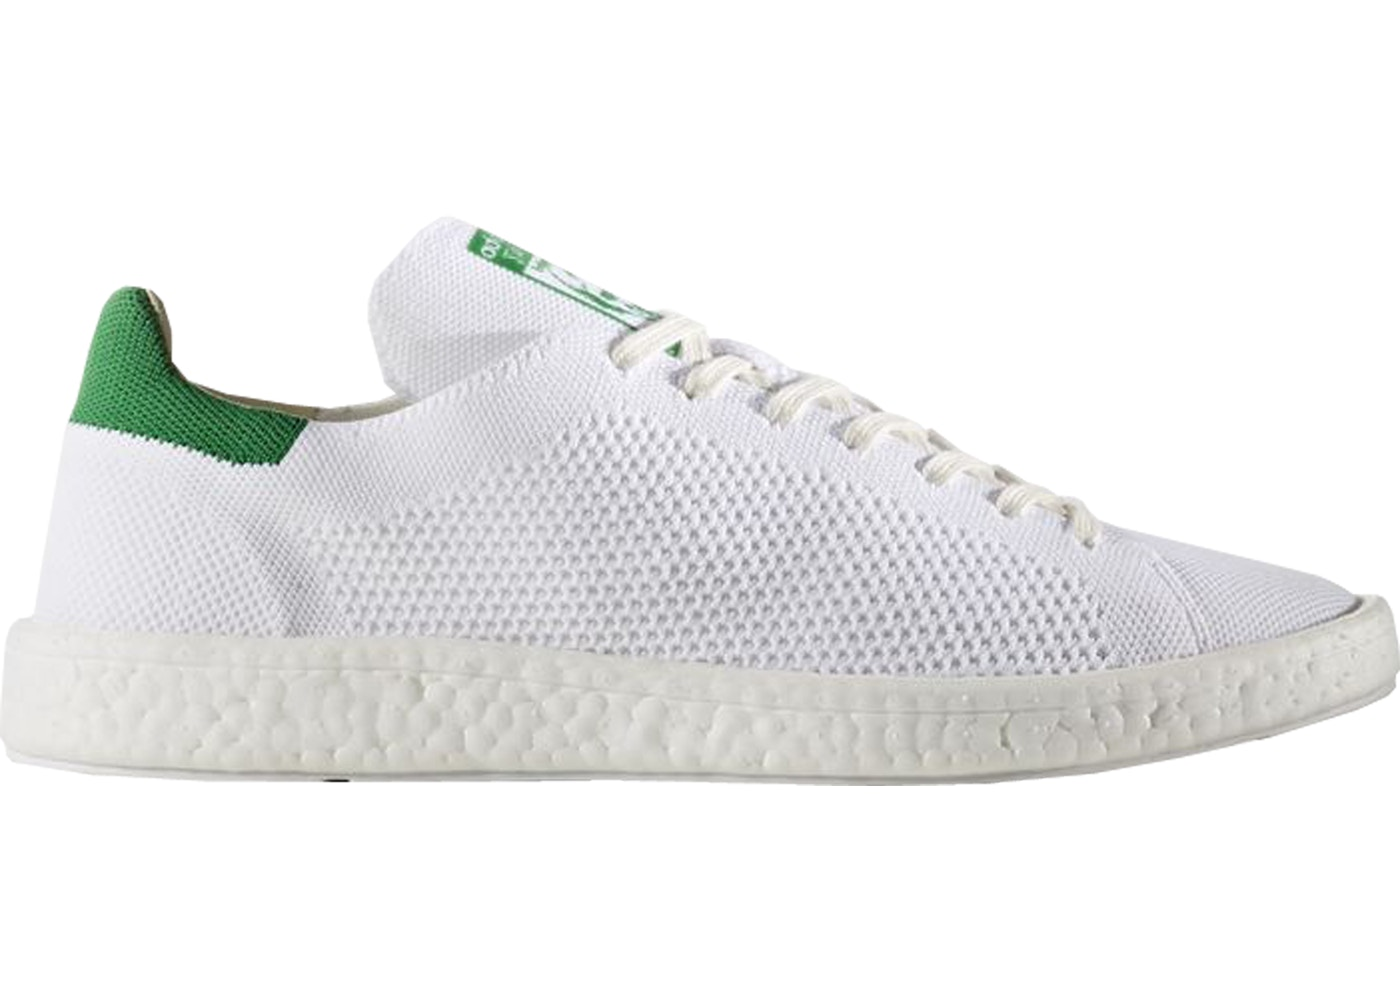 online retailer 33066 aad0a adidas Stan Smith Boost Primeknit White Green